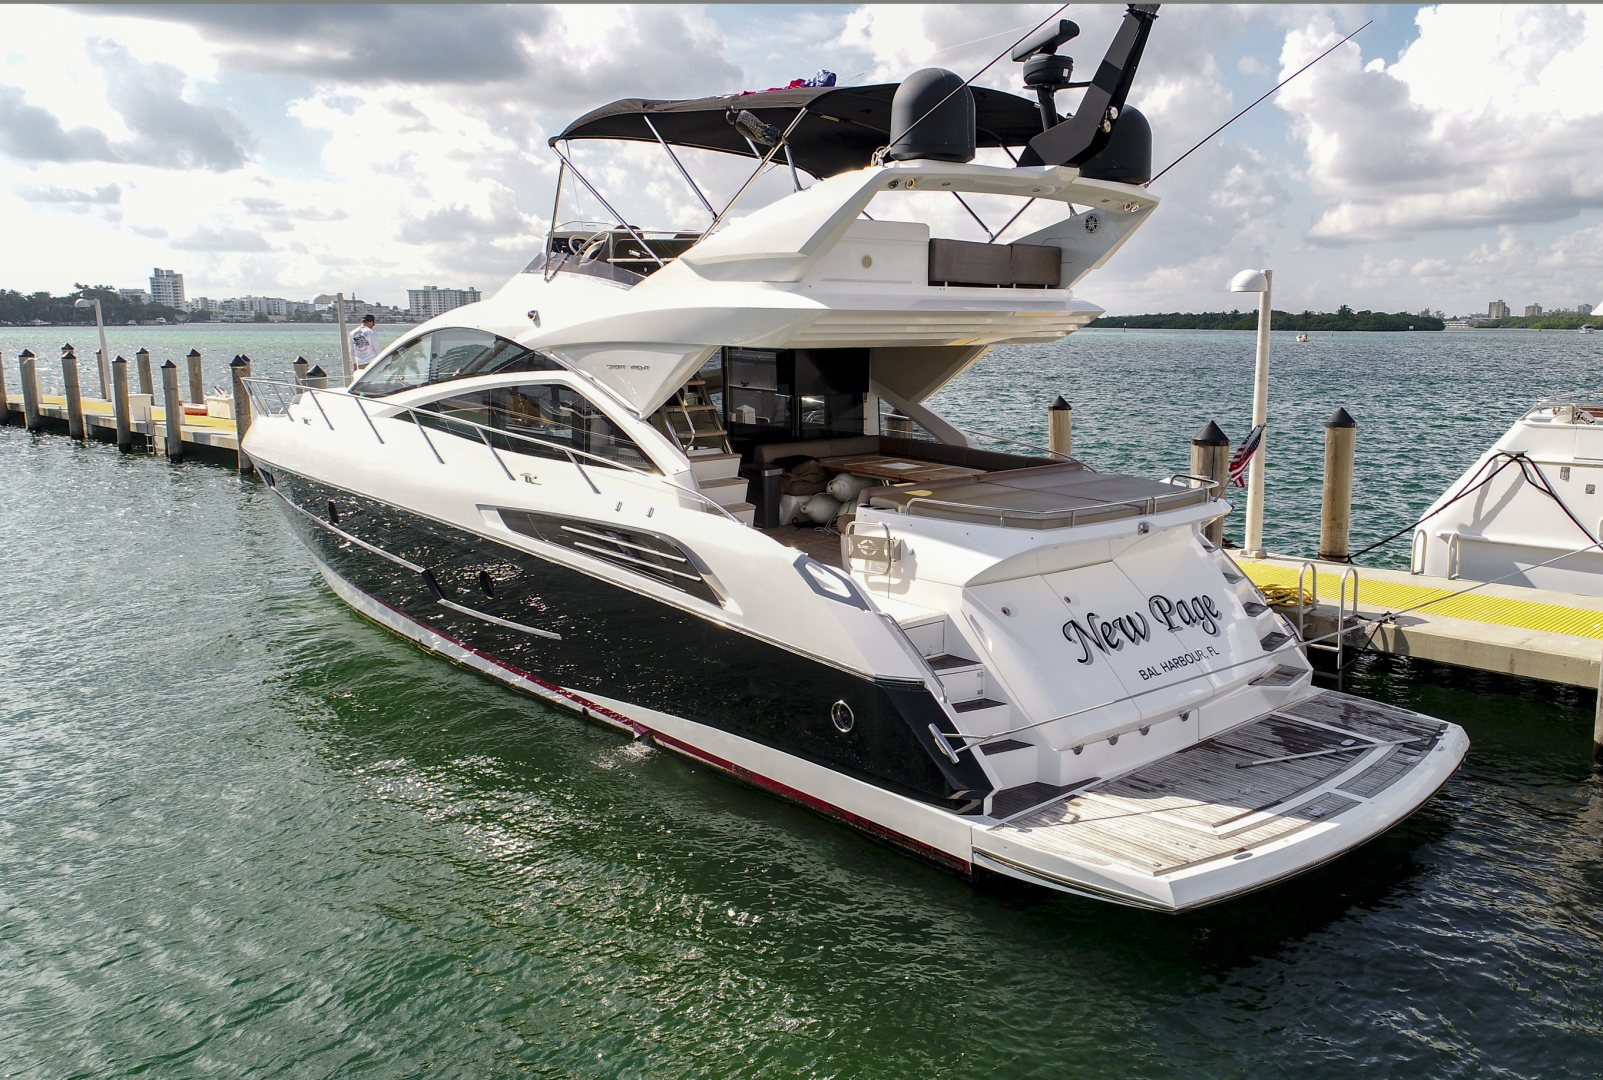 Sunseeker-68 Sport Yacht 2014-New Page Miami Beach-Florida-United States-1581176 | Thumbnail